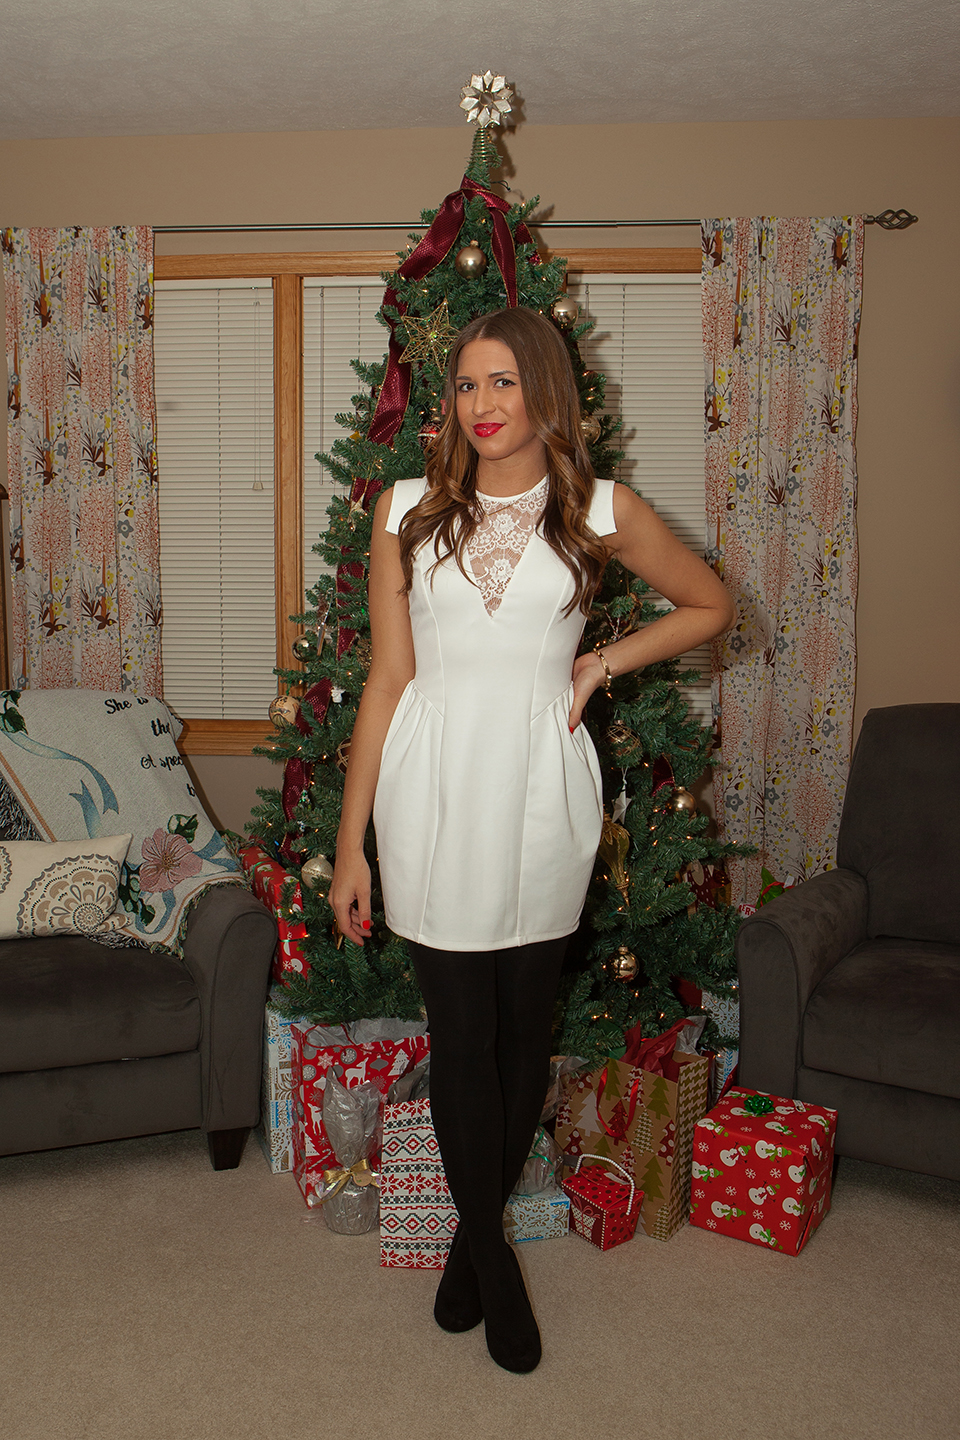 Christmas tree dress up images - Christmas Eve Has Always Been Fun For My Sister And I Because From A Fashion Point Of View We Get To Dress Up Ok Not Get To Dress Up Choose To Dress